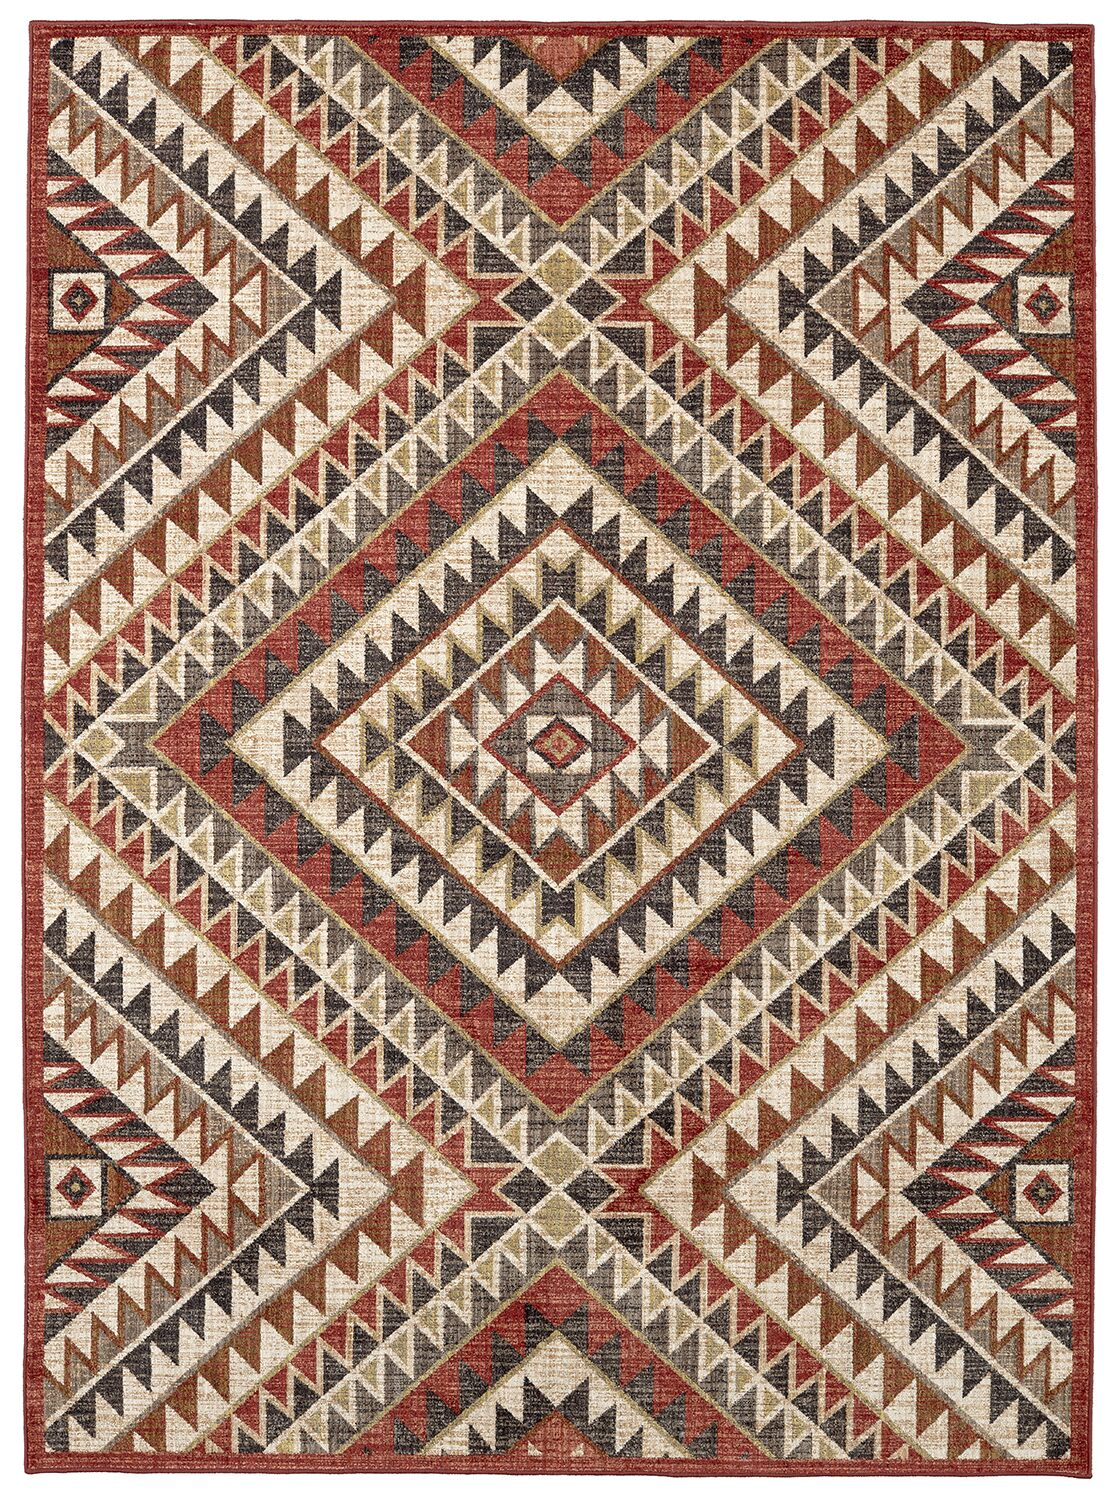 Destinations South Pass Brown/Gold Area Rug Rug Size: Rectangle 9'6